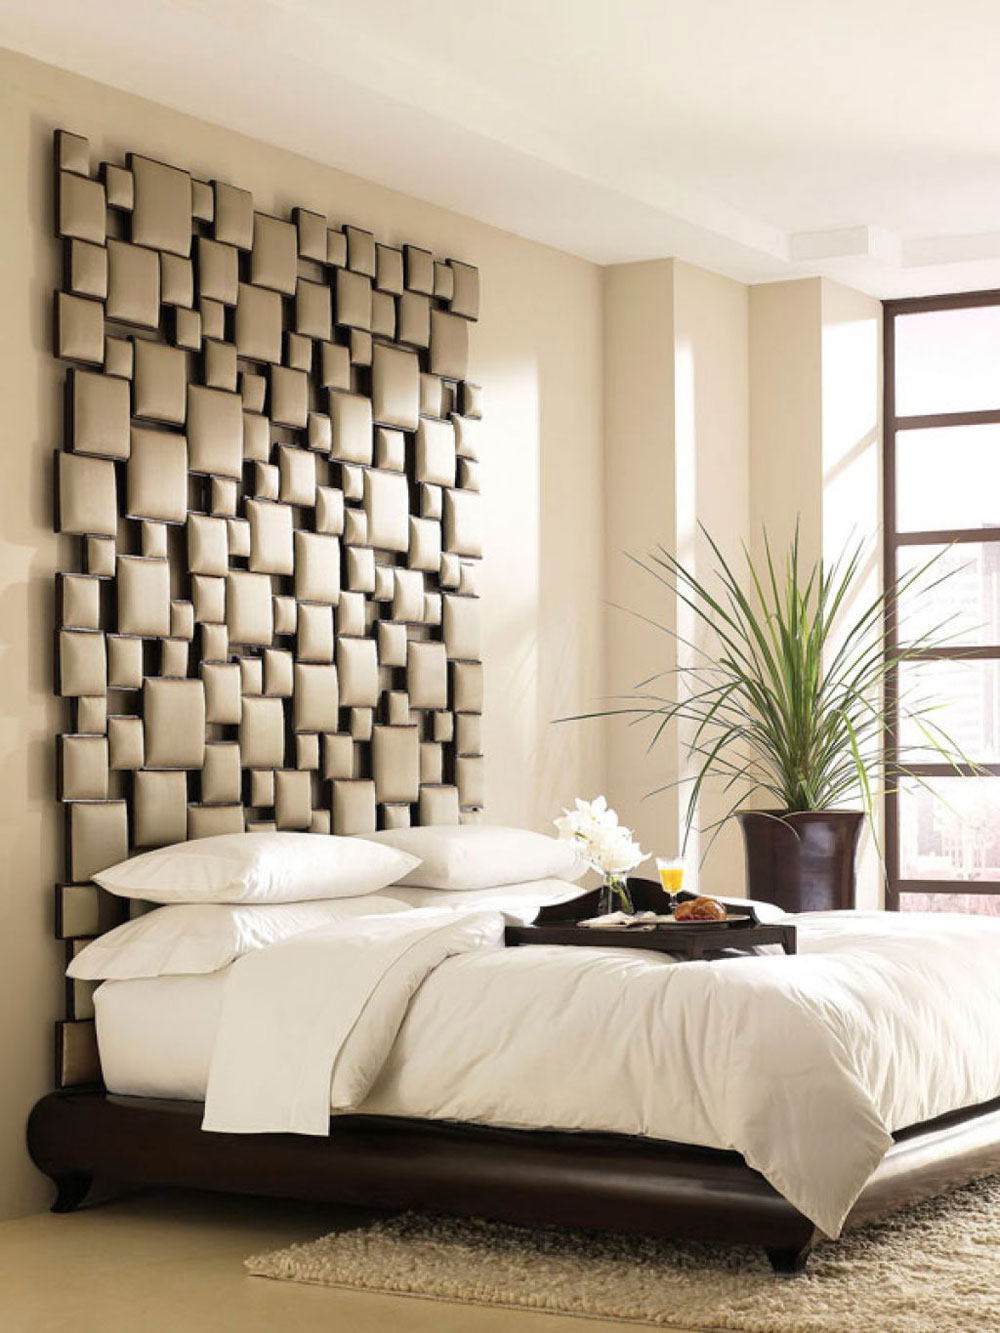 Fashionable bedrooms with these headboard decoration ideas-10 Fashionable bedrooms with these headboard decoration ideas